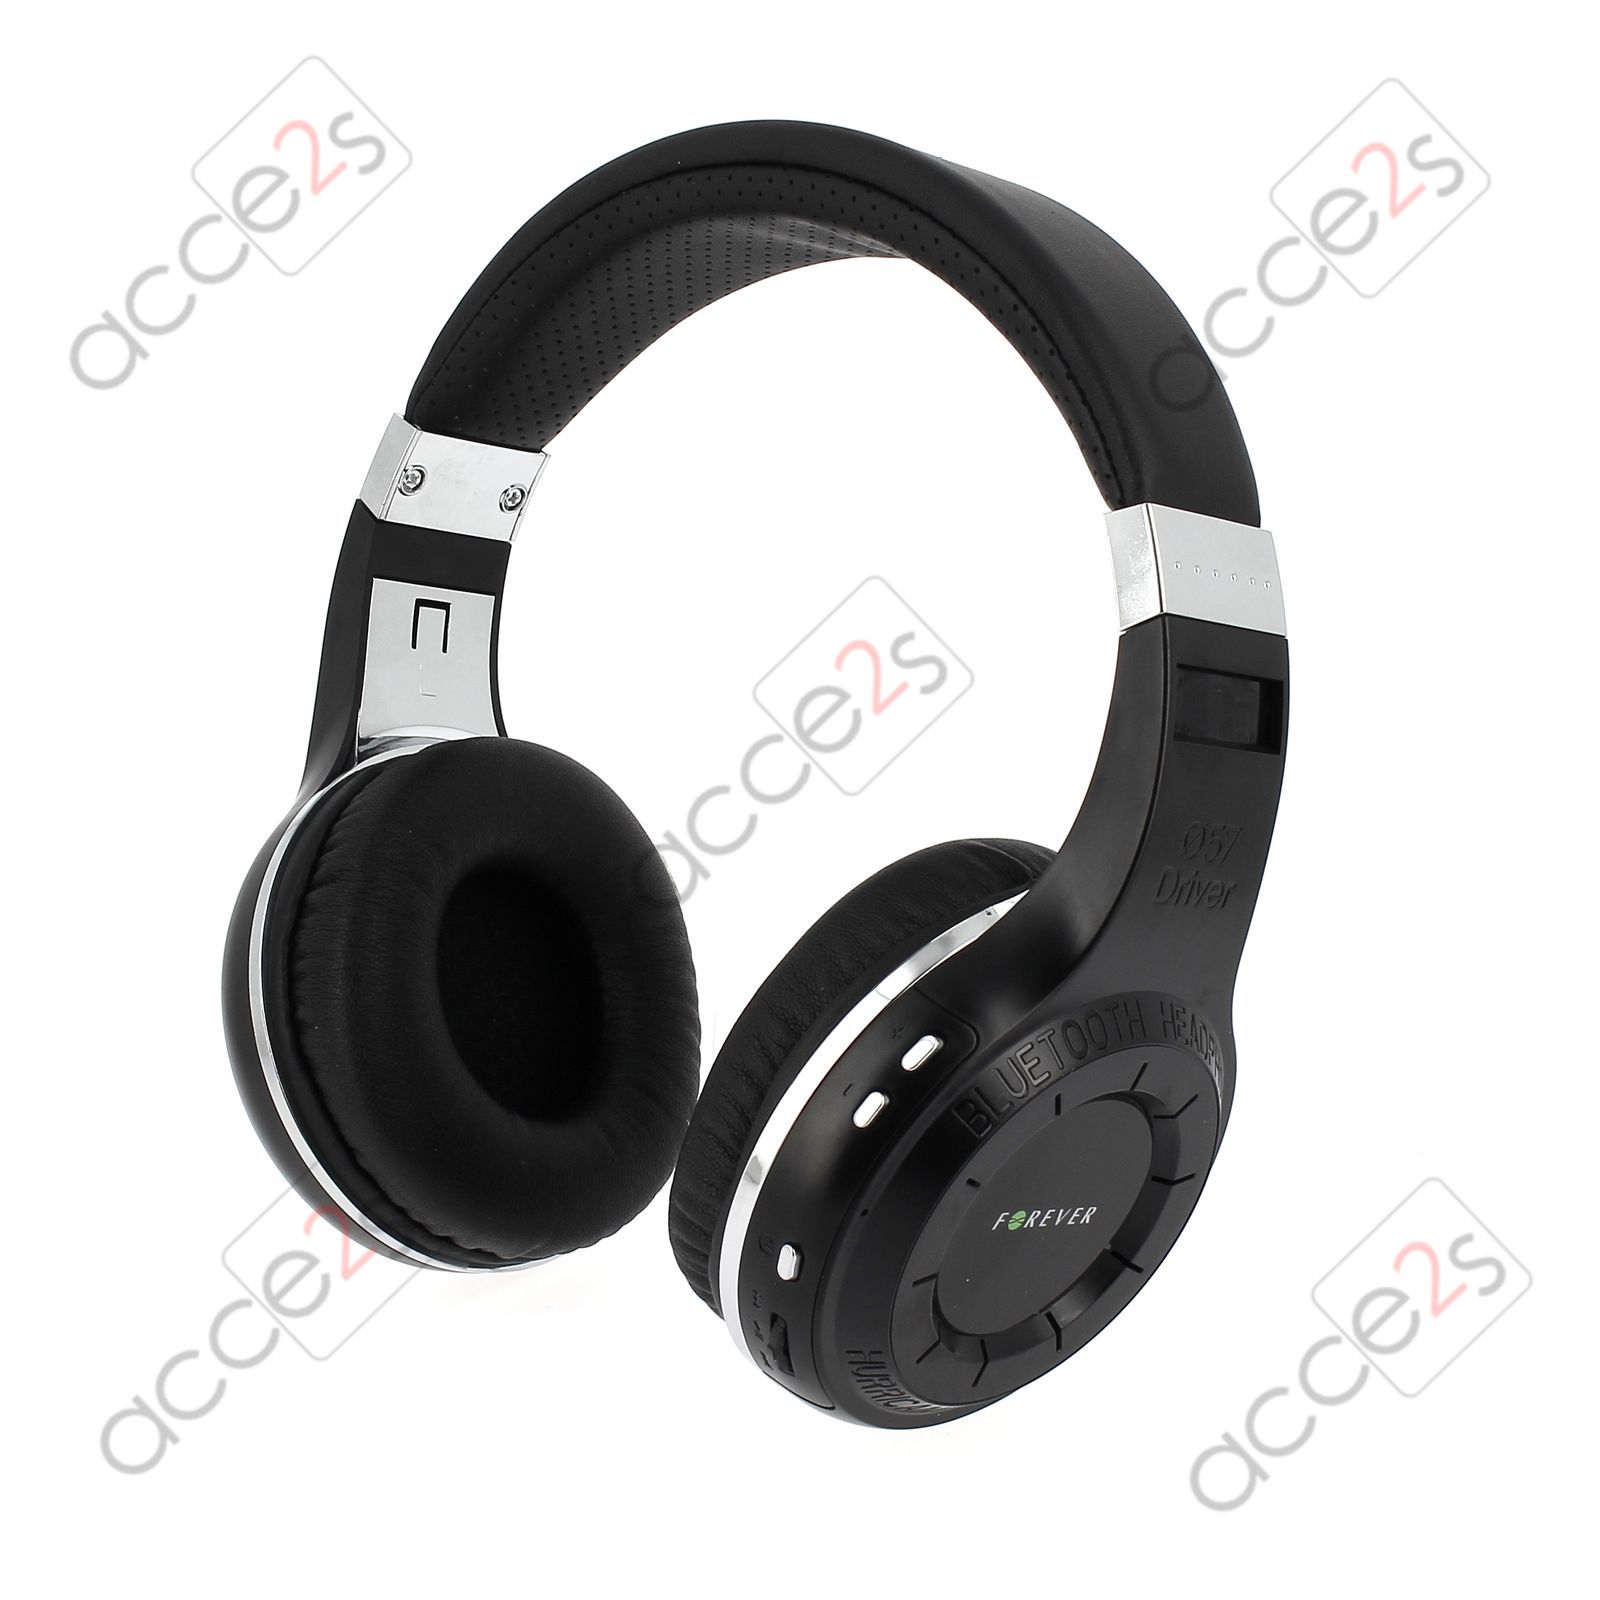 casque bluetooth pour sony xperia z3 z3 compact mf700 ebay. Black Bedroom Furniture Sets. Home Design Ideas